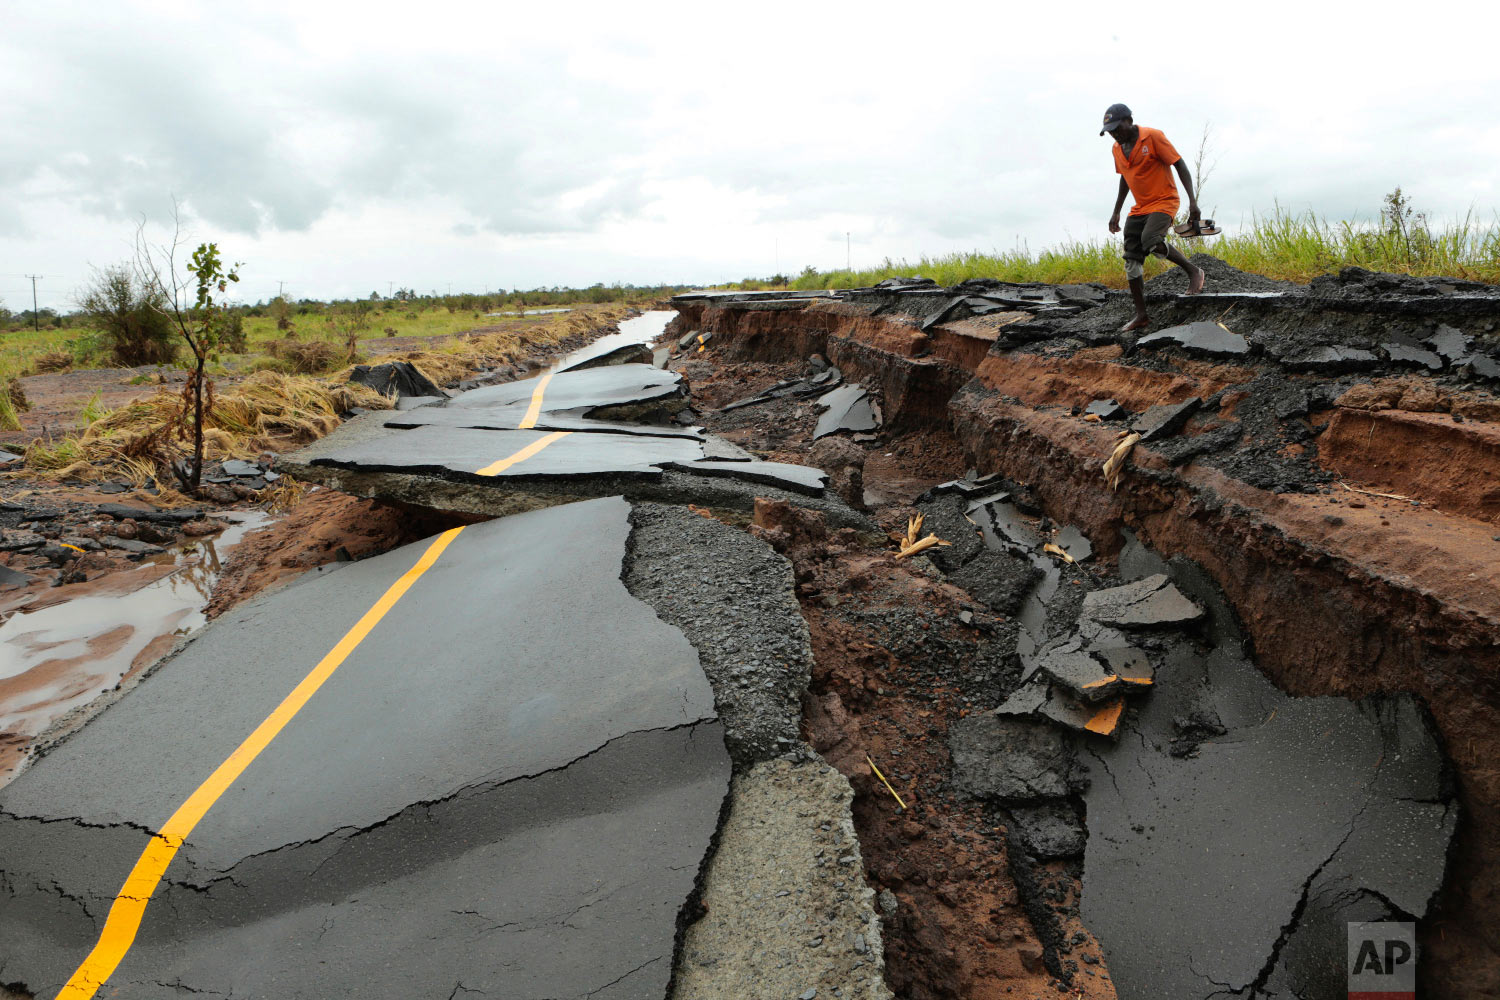 A man walks through a section of a road damaged by Cyclone Idai in Nhamatanda, Mozambique, about 50 kilometers (30 miles) from Beira, on Friday March, 22, 2019. (AP Photo/Tsvangirayi Mukwazhi)